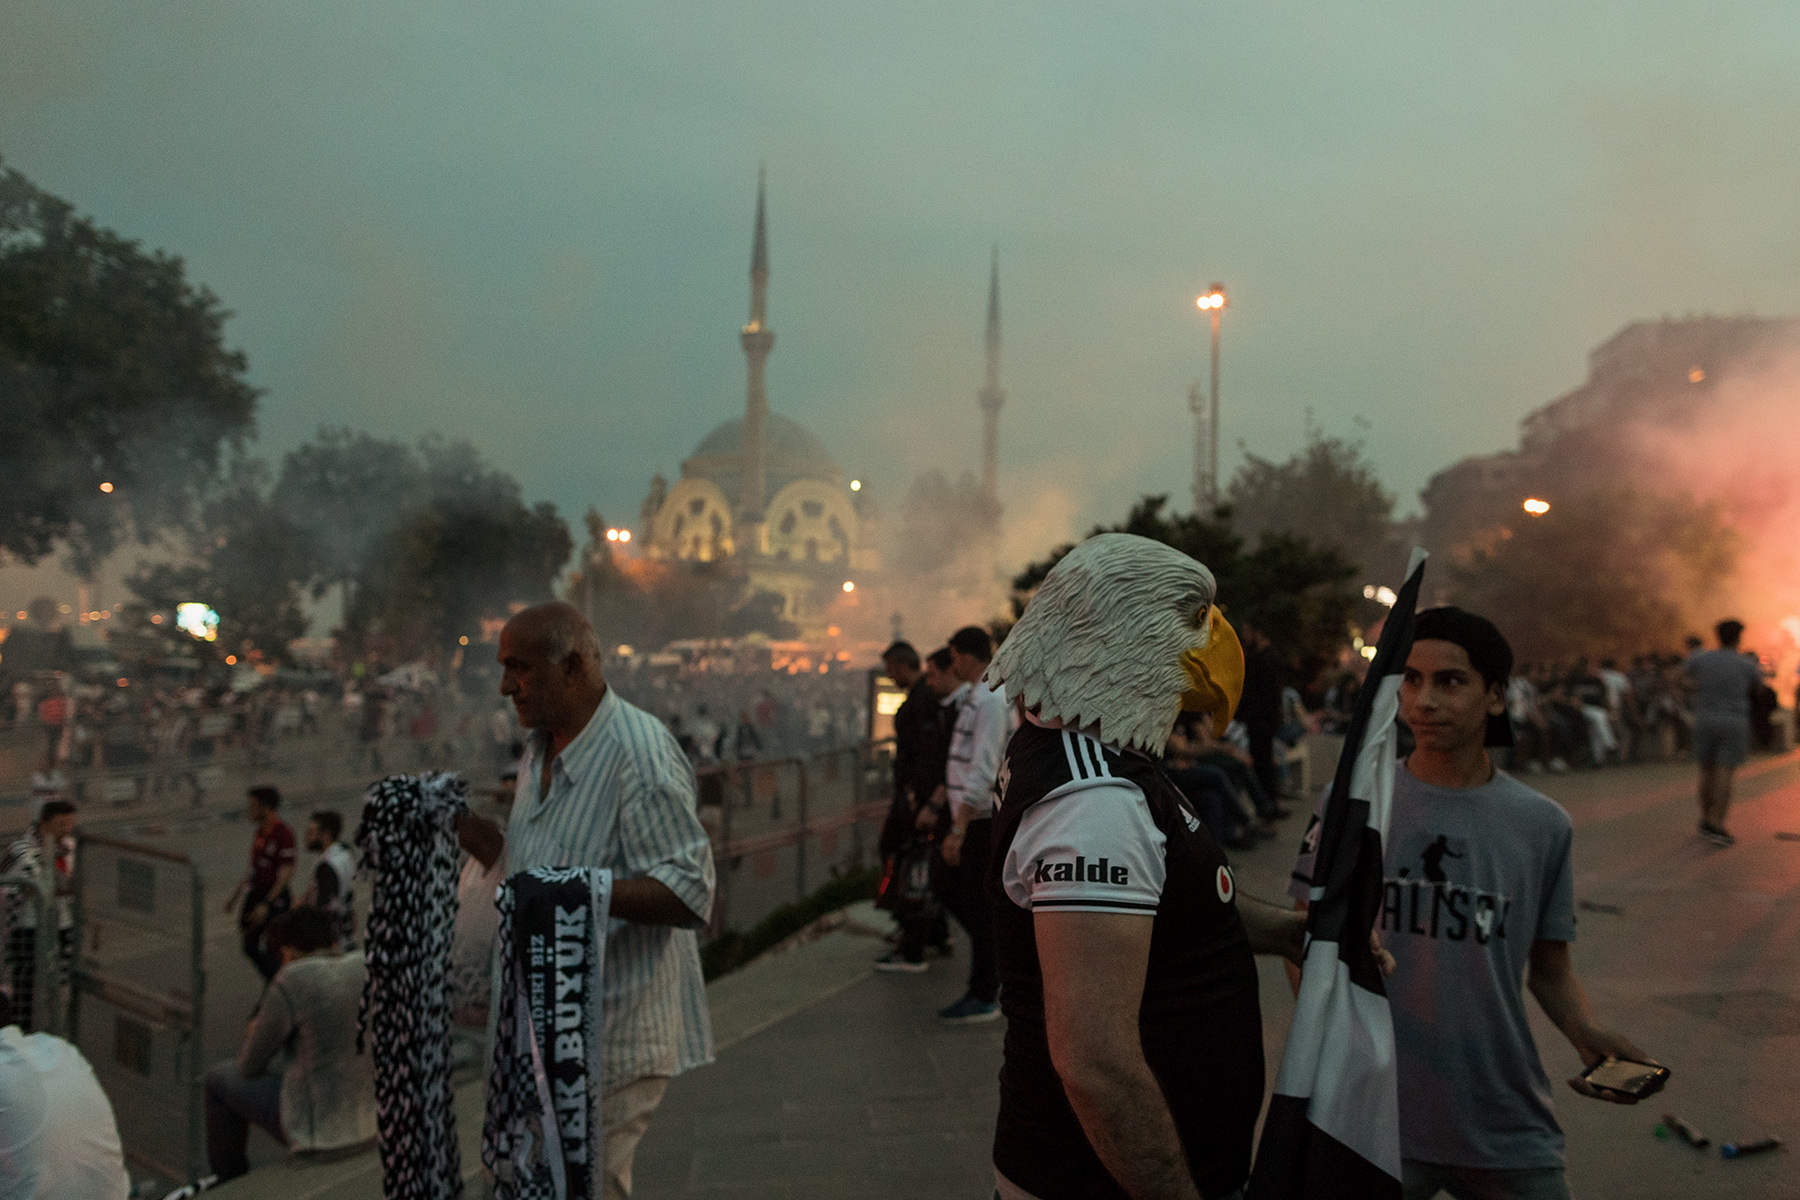 A Besiktas supporter is seen with an eagle mask, symbol of the club, as supporters leave the stadium to celebrate the Turkish Super League title after the last match of the season against Osmanlispor, near the Vodafone Park stadium in Istanbul, Turkey, Saturday, June 3, 2017.